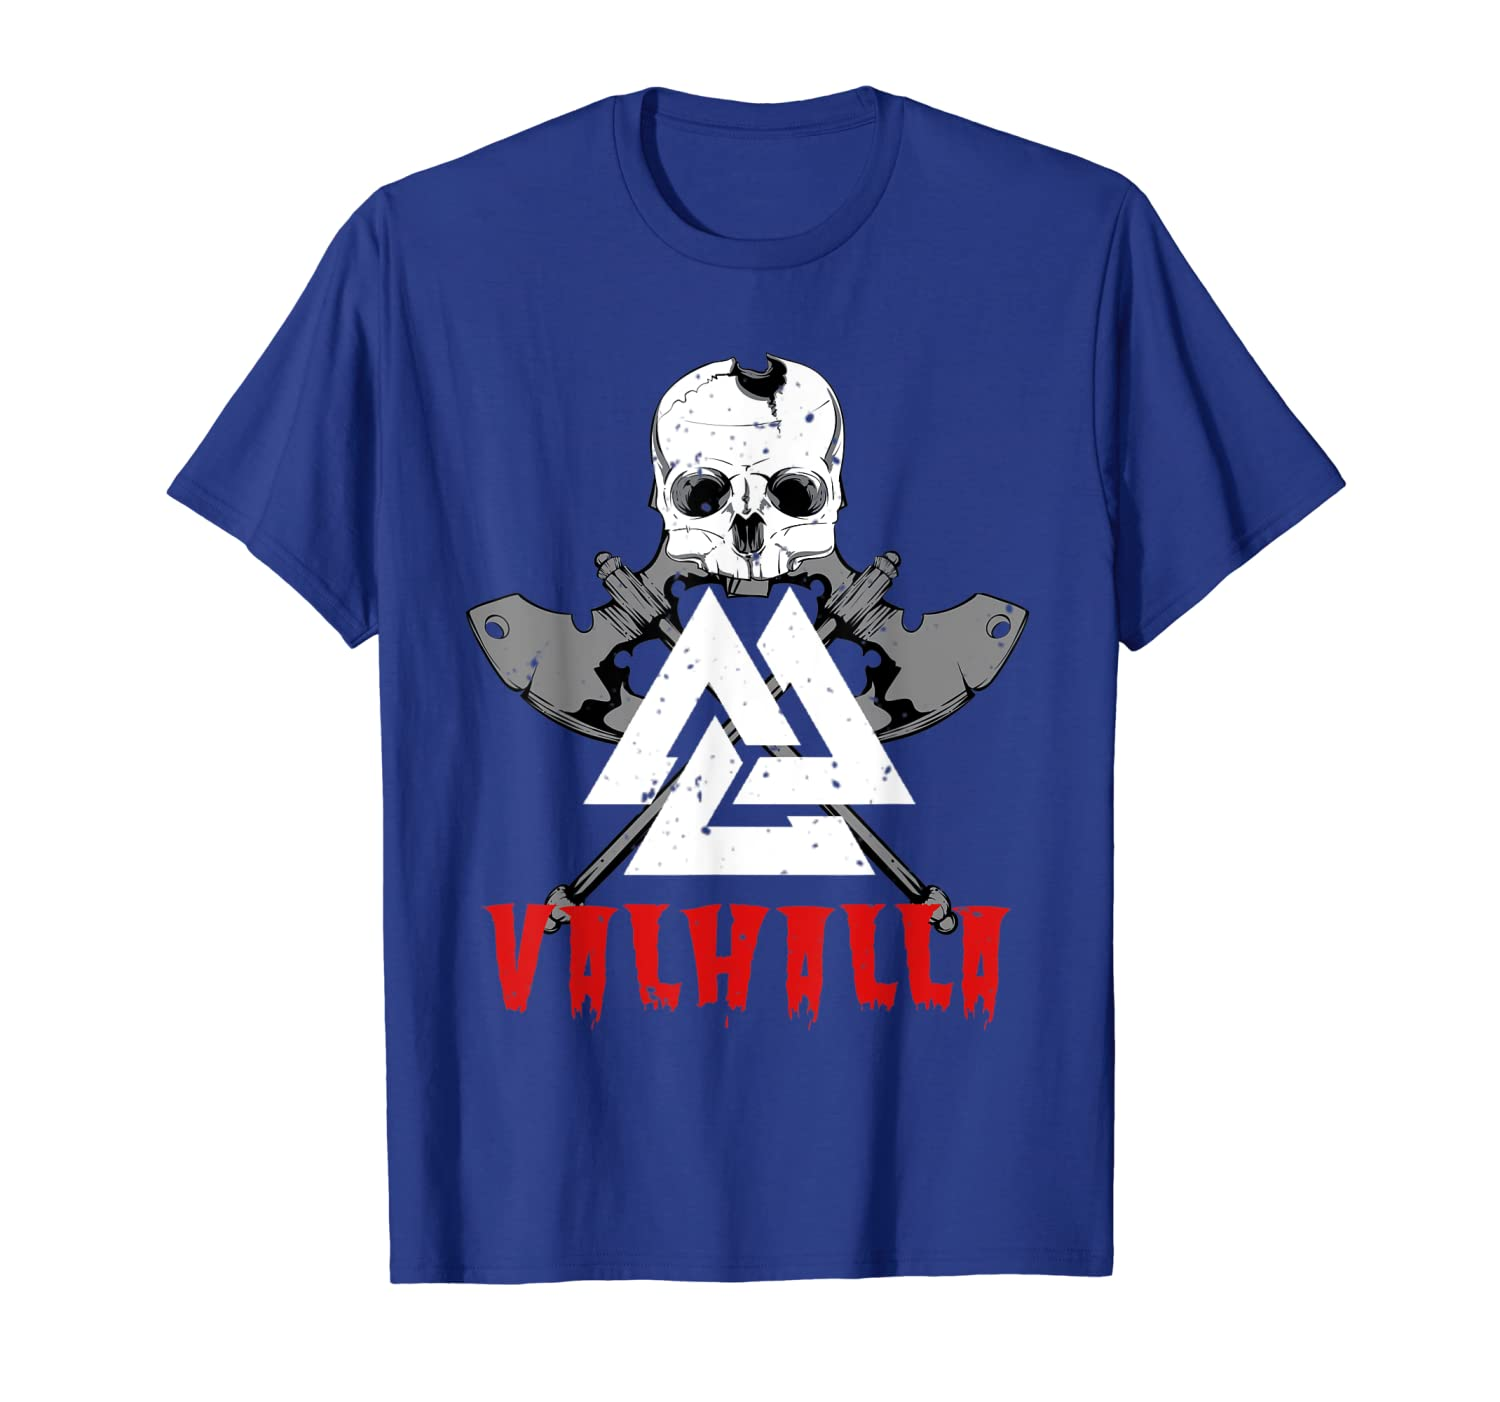 Viking Warrior T Shirt, Viking Axe Valknut Skull Valhalla T-Shirt-TH